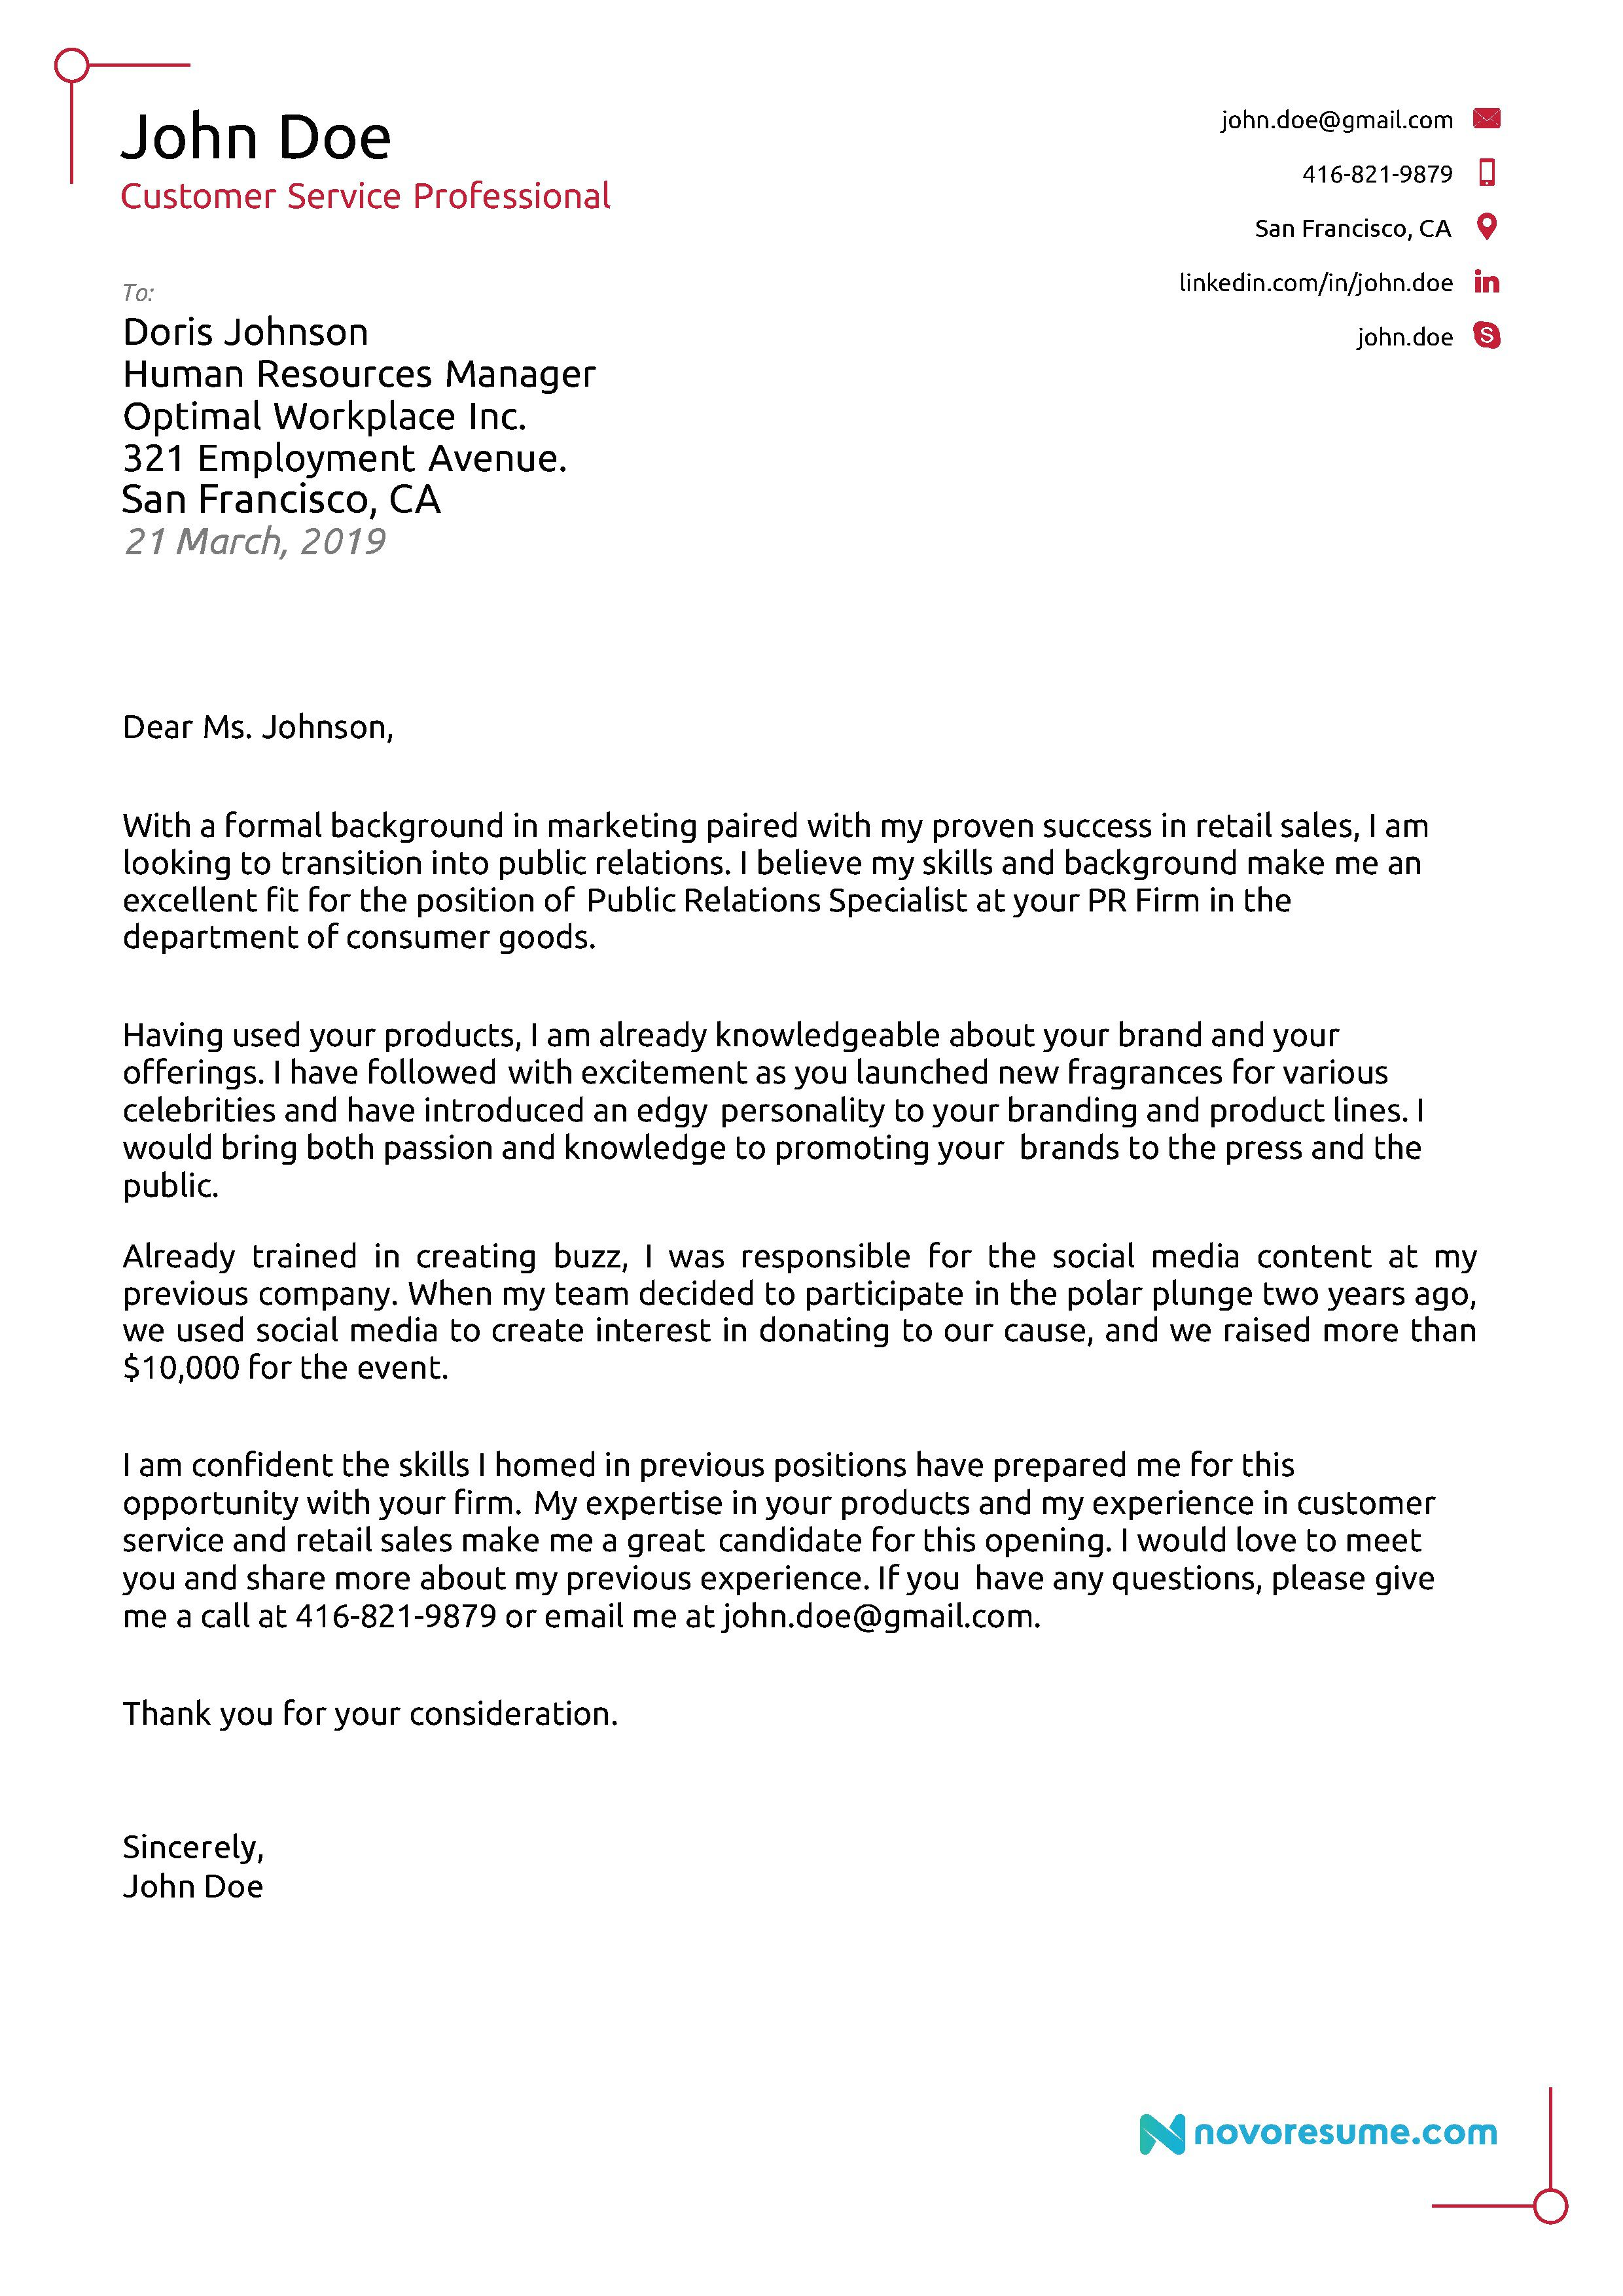 006 Formidable Sample Cover Letter Template Concept  For Administrative Assistant Best Job Application CvFull